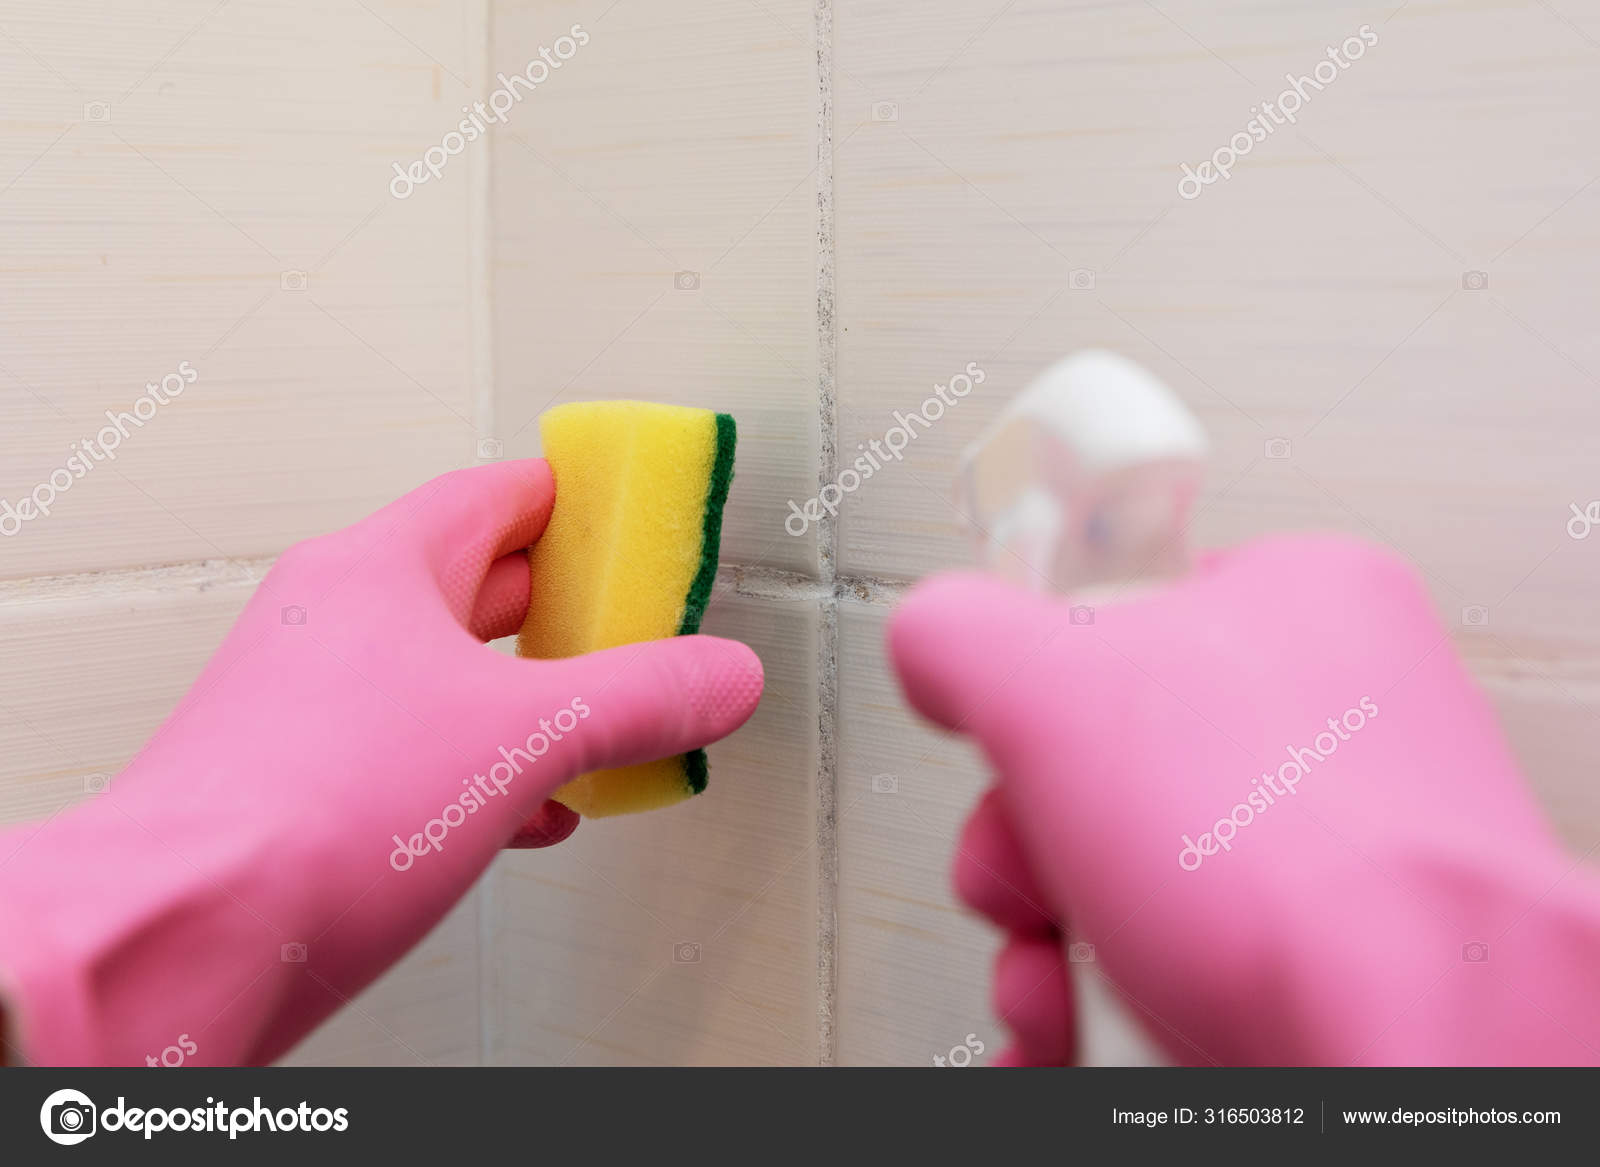 https depositphotos com 316503812 stock photo dirty tile cleaning and mold html